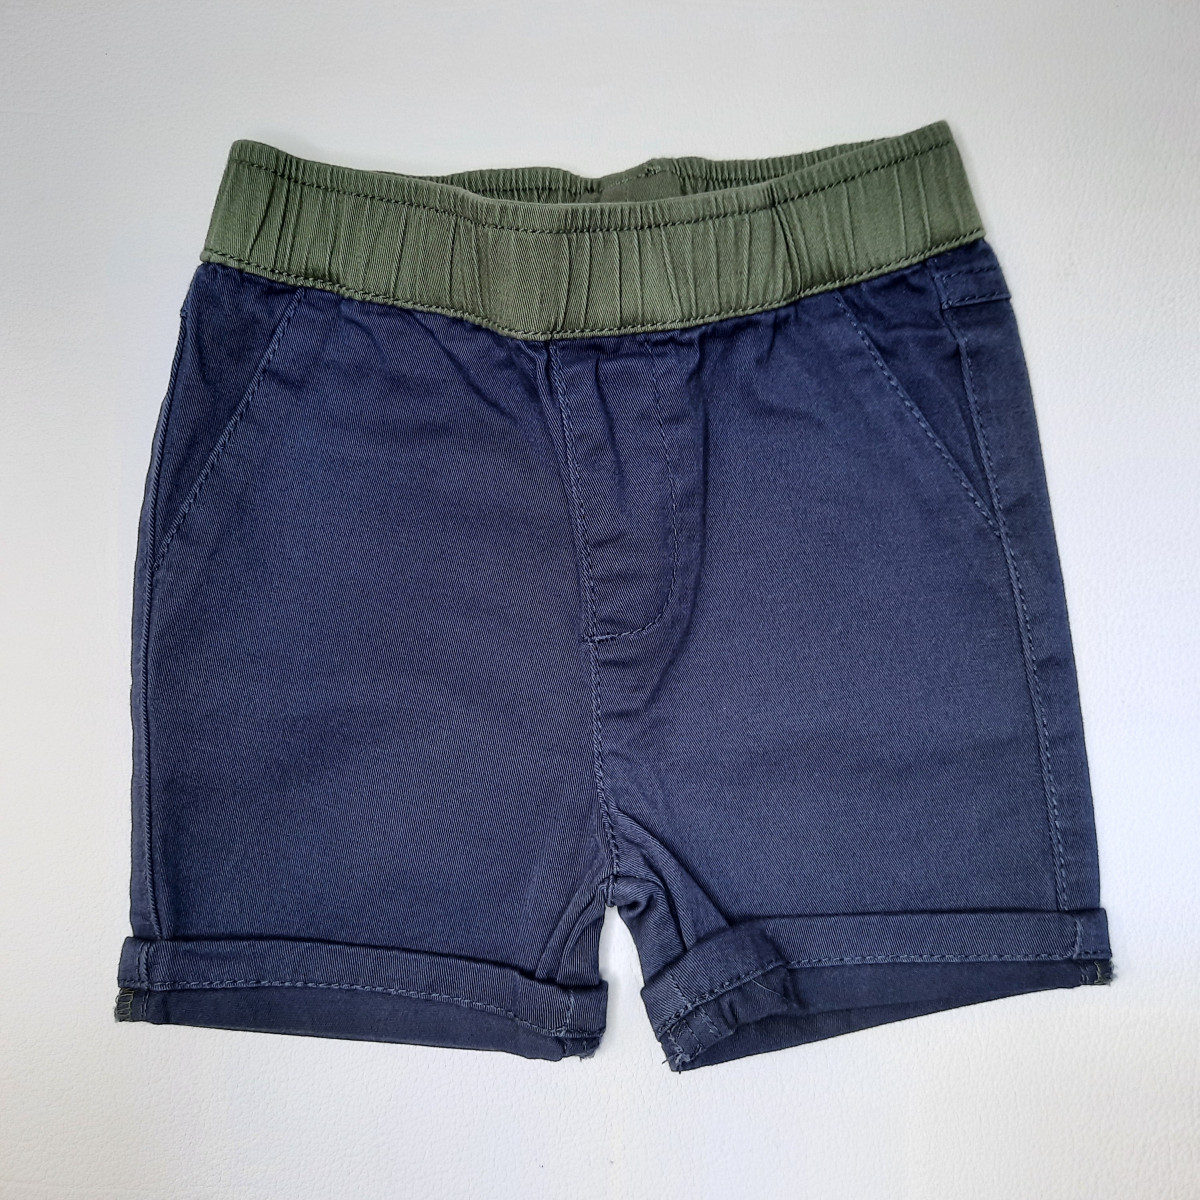 Short marine - photo 6